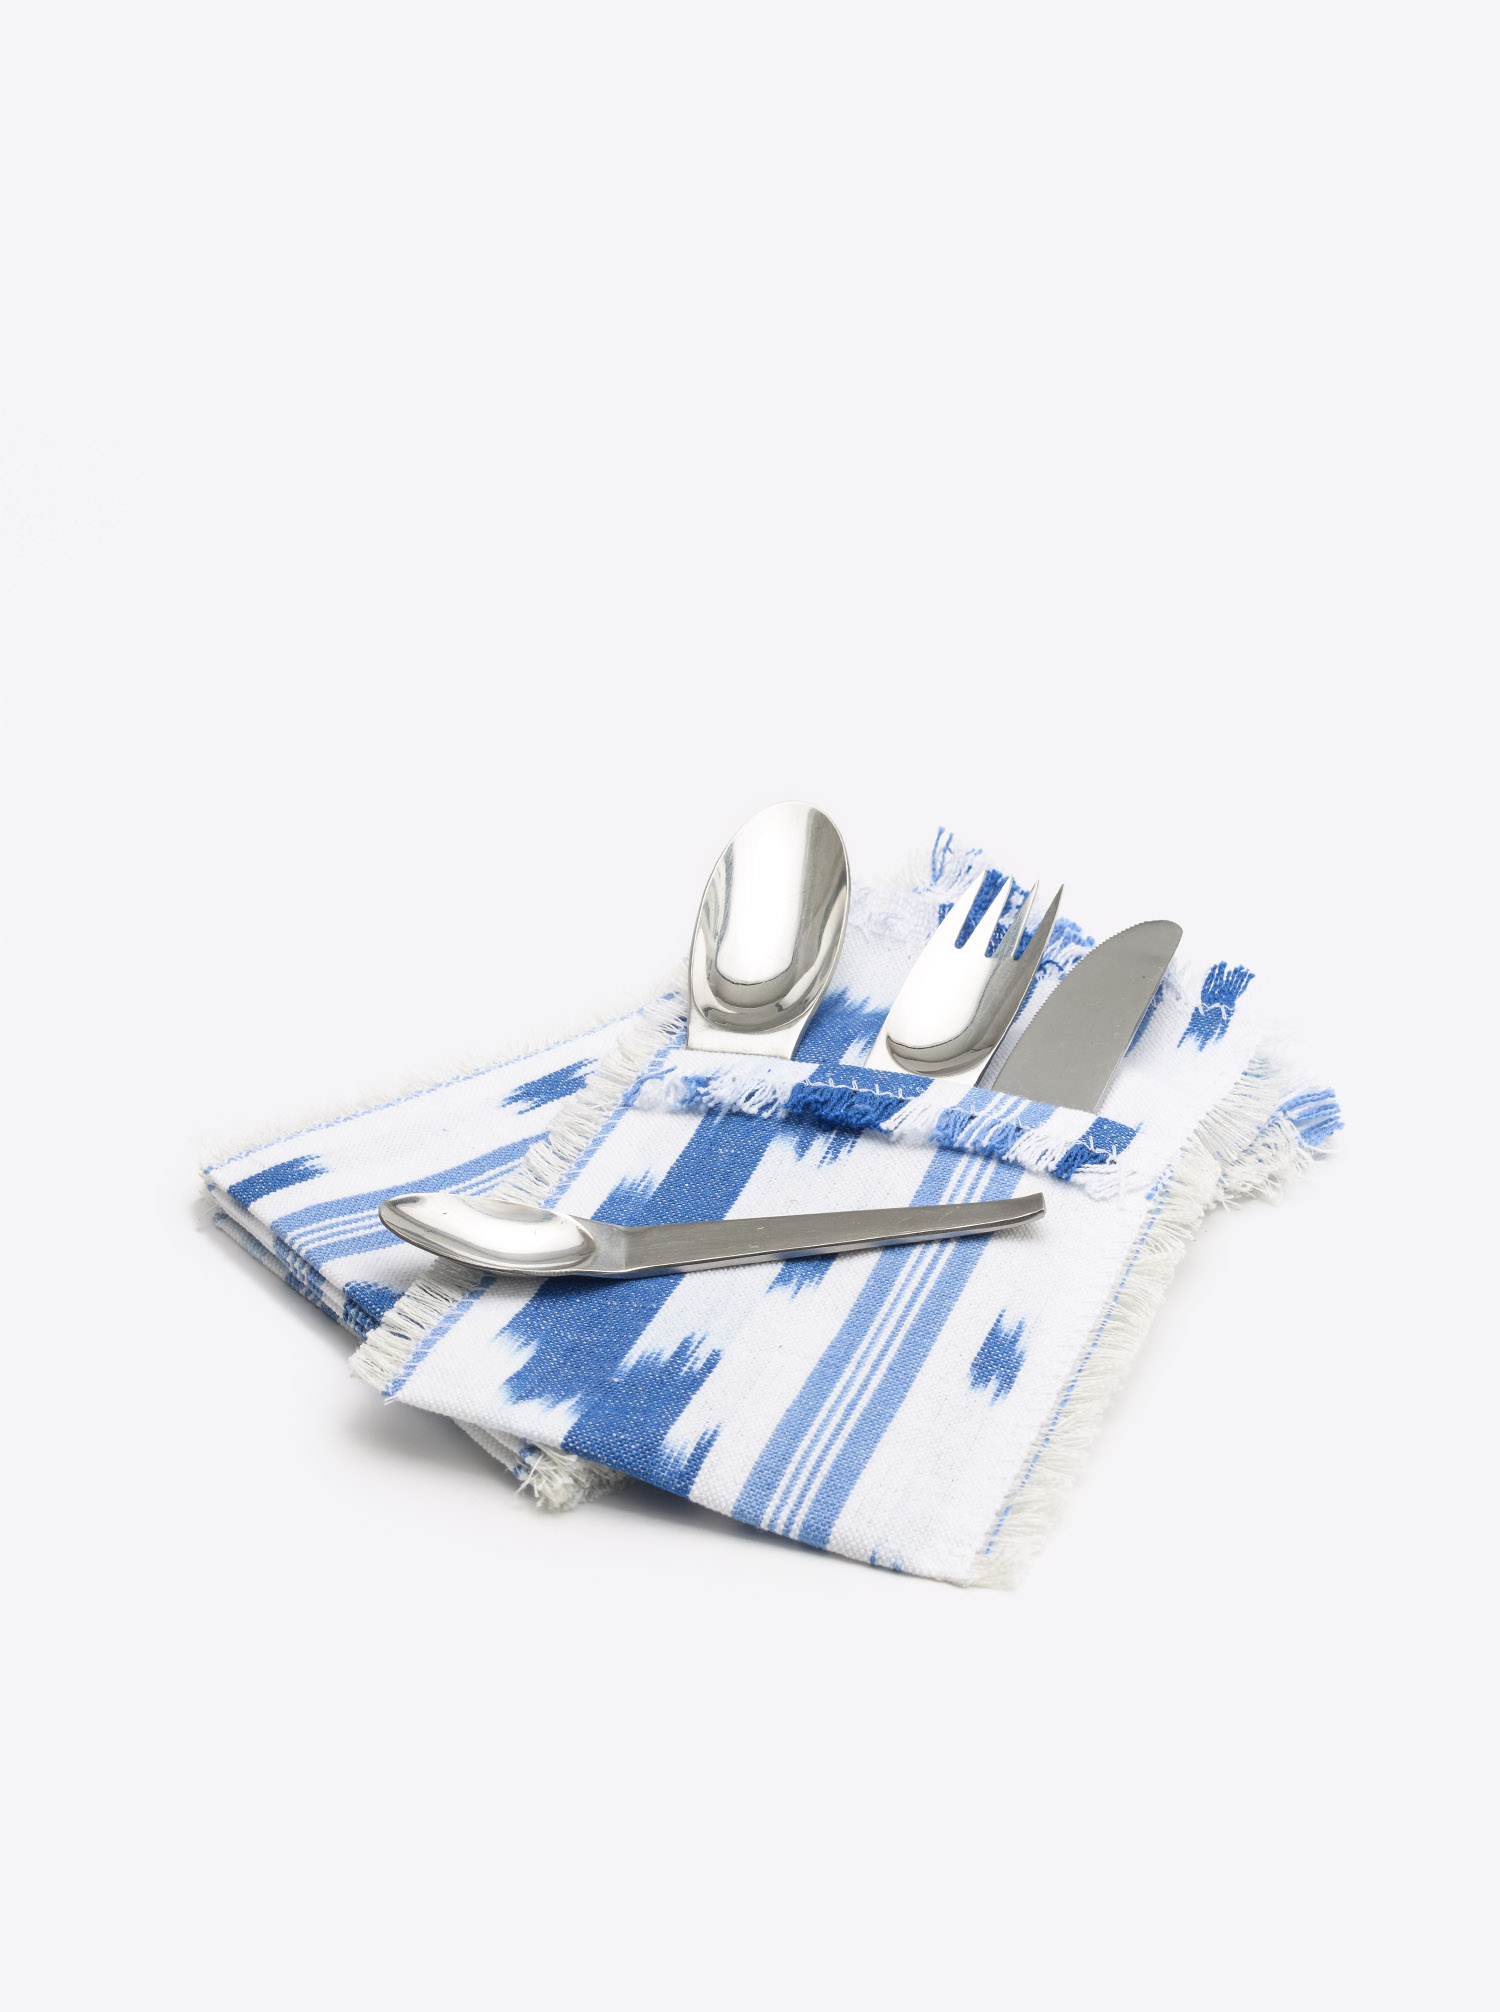 Cutlery Holder Set Cubierto 6 pieces Ikat midblue